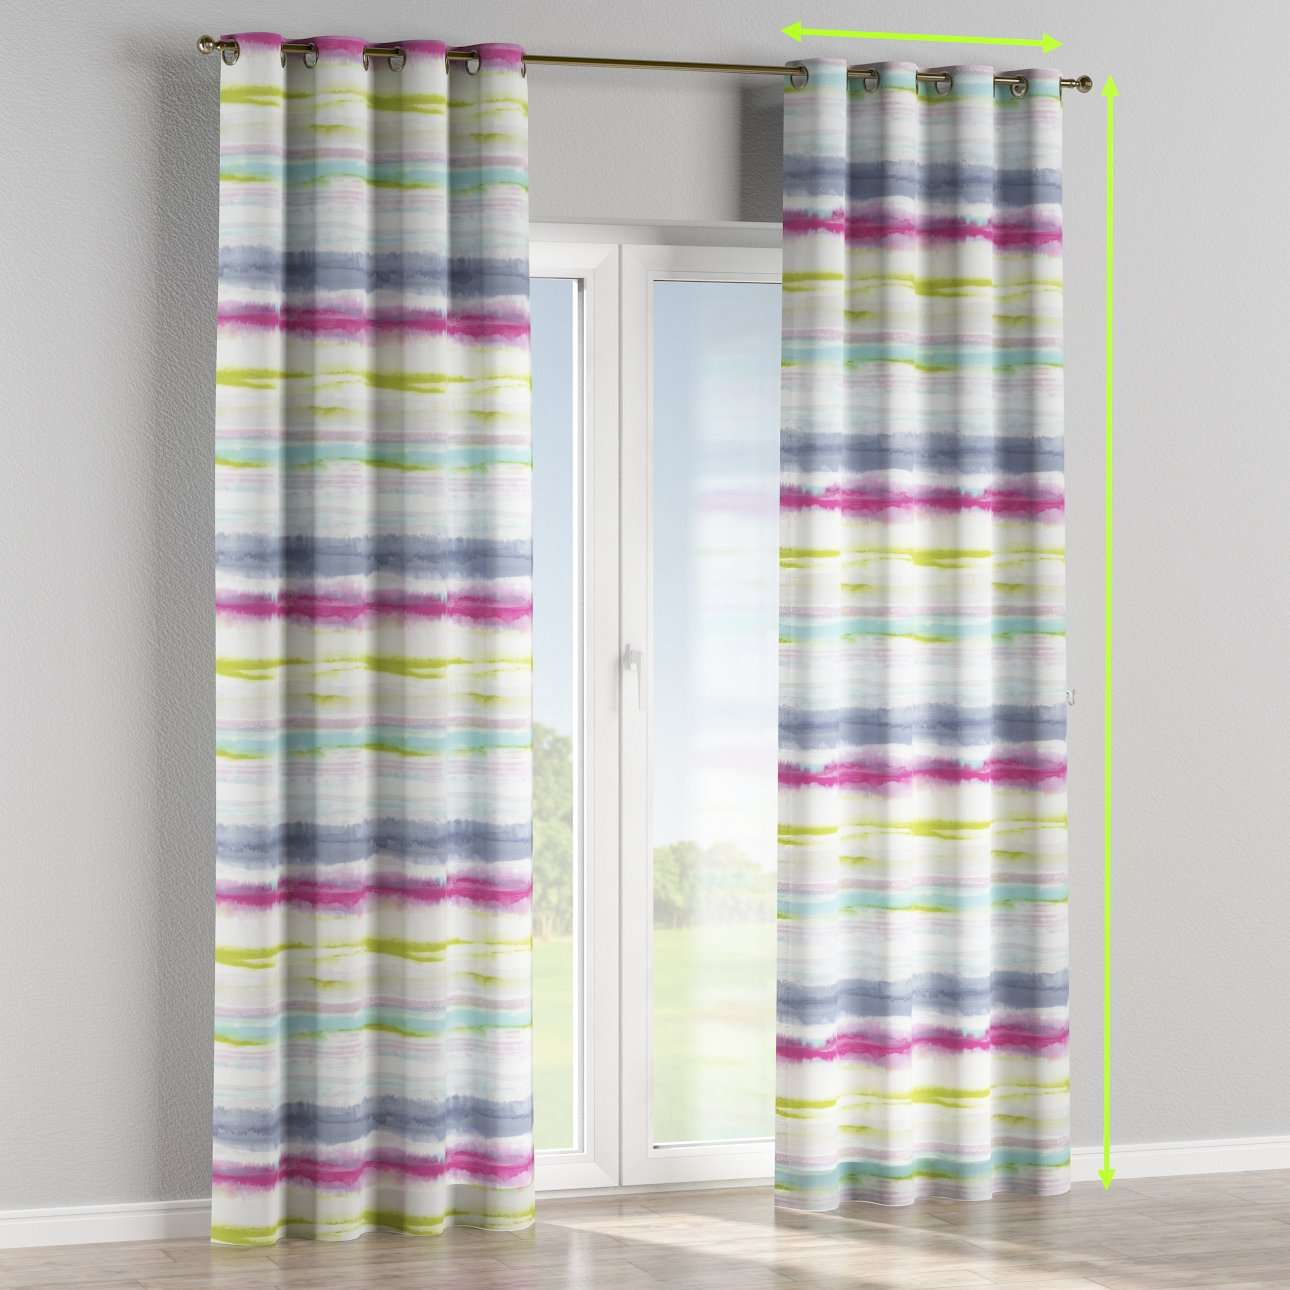 Eyelet curtains in collection Aquarelle, fabric: 140-69